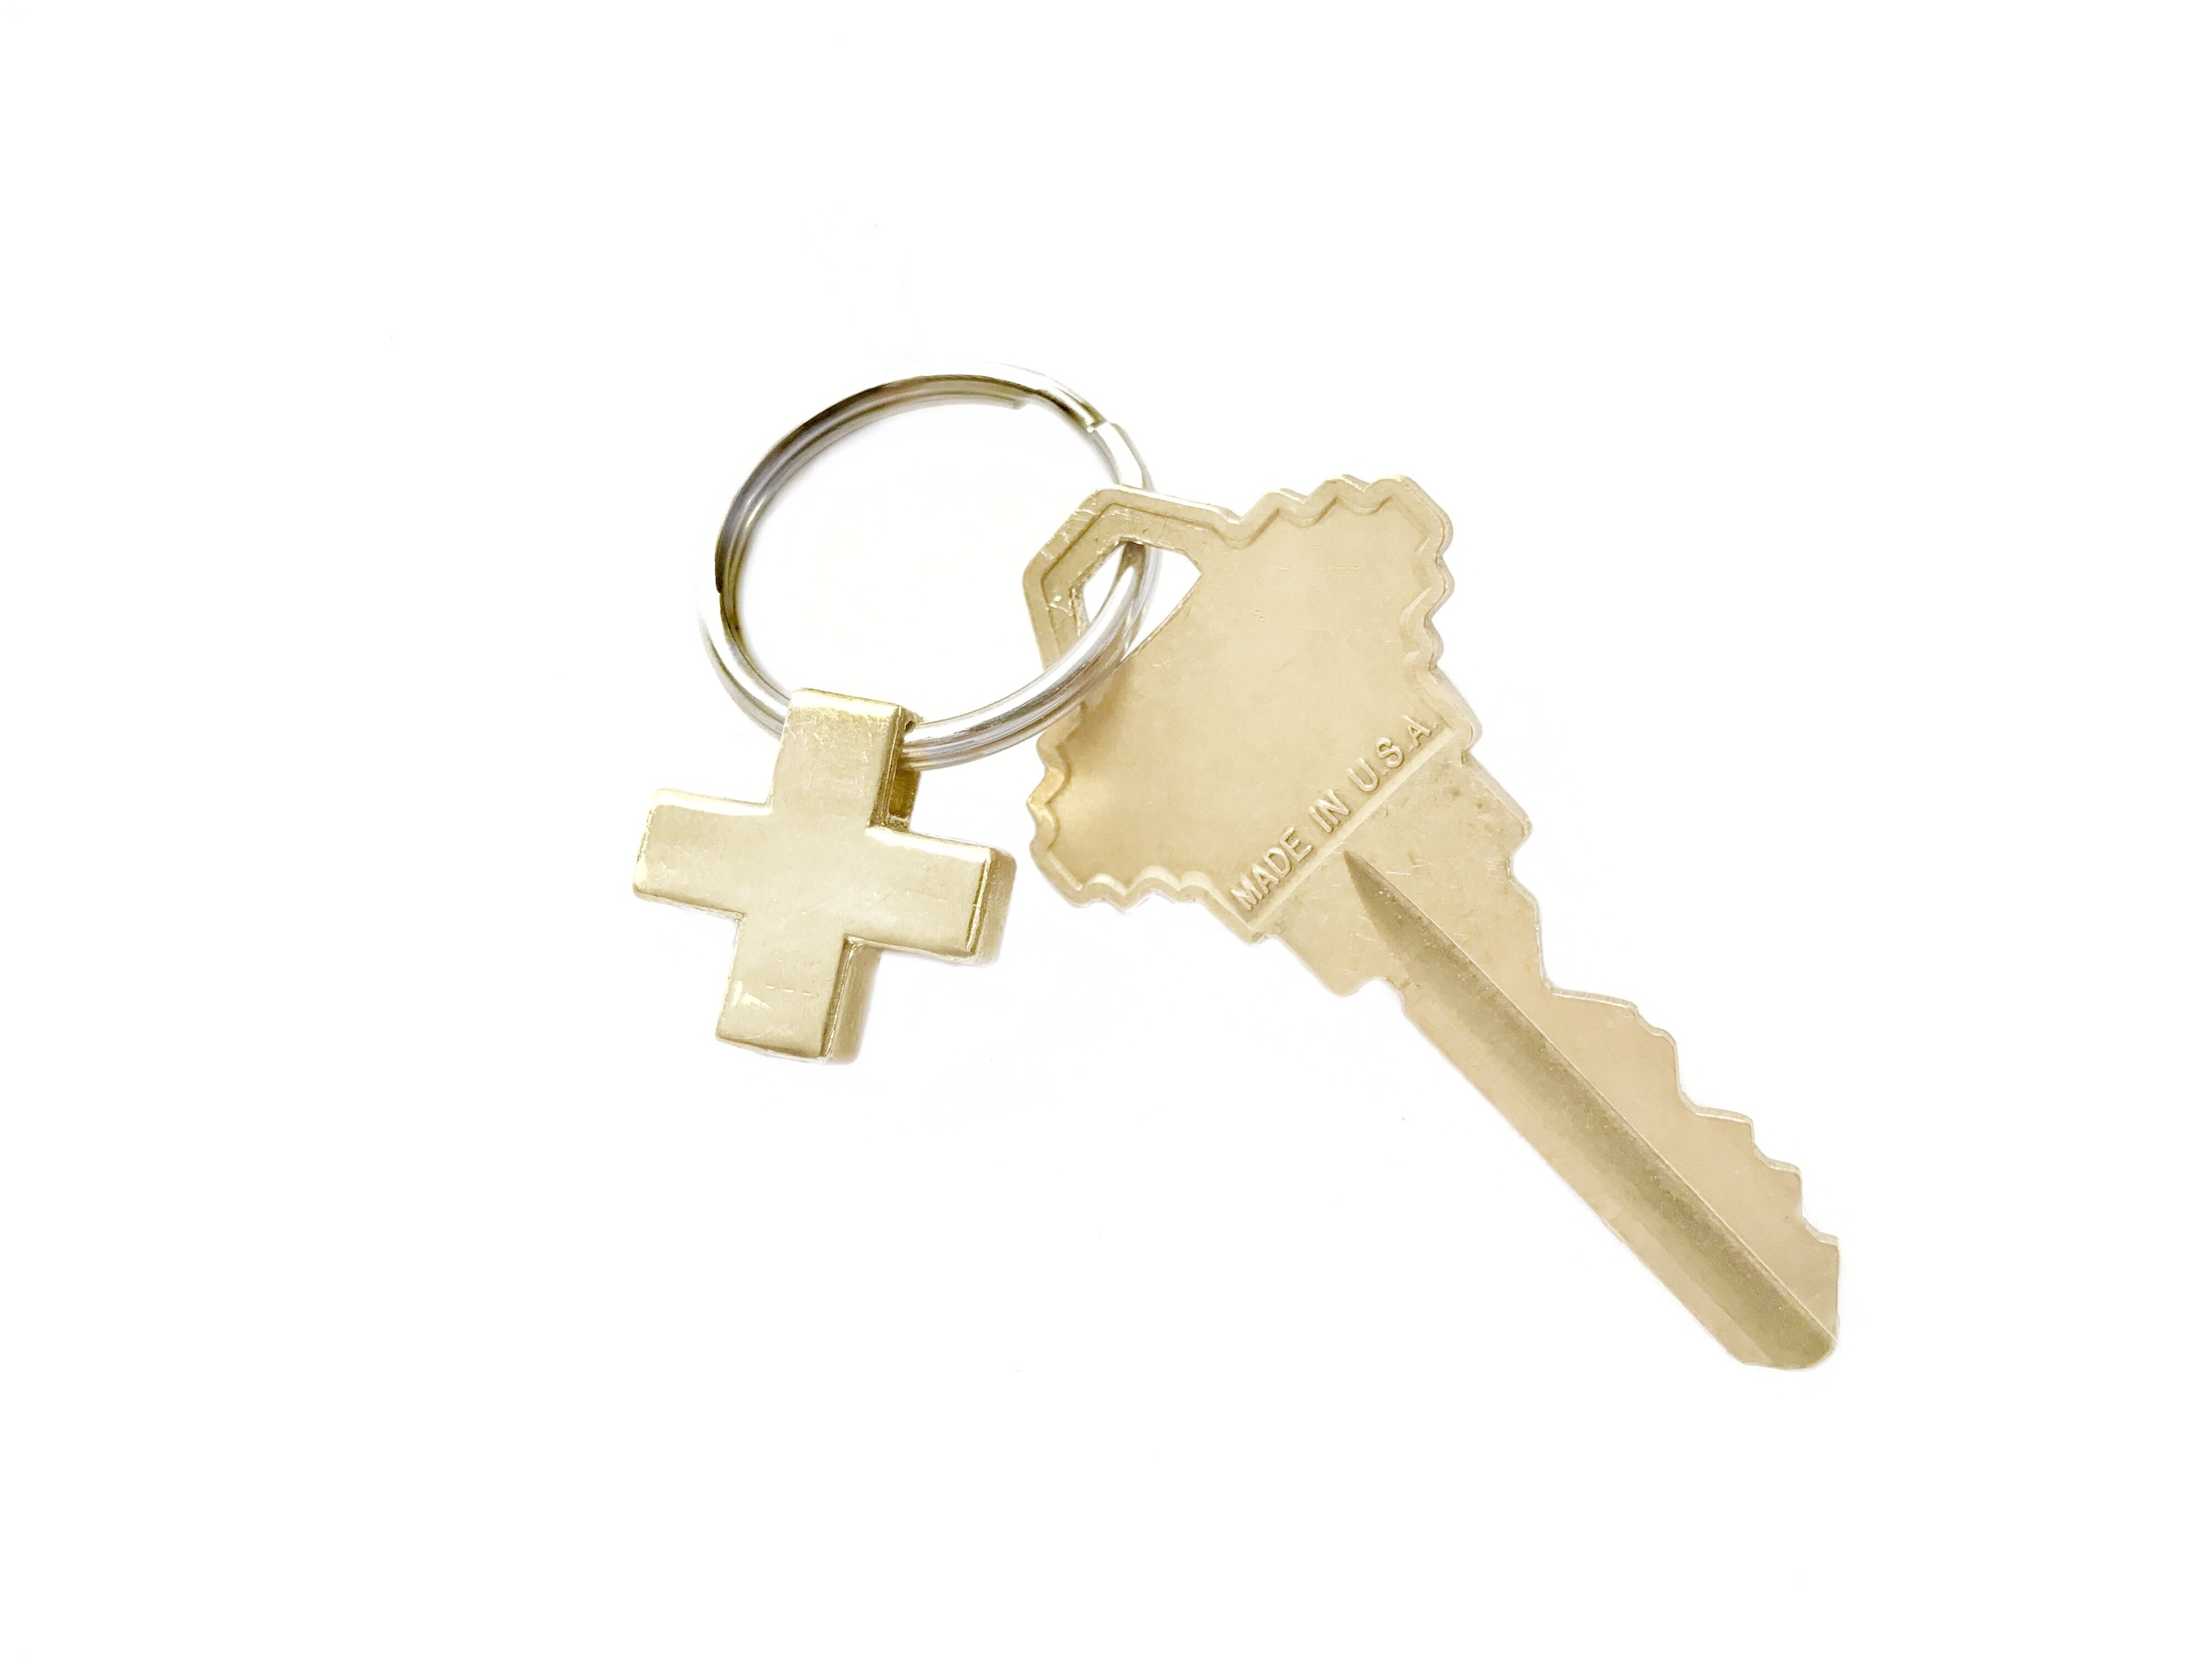 FREE KEYCHAIN! - YOUR ORDERS SHIP WITH A PLUS KEYCHAIN TILL THE END OF THE MONTH,WOOHOO!